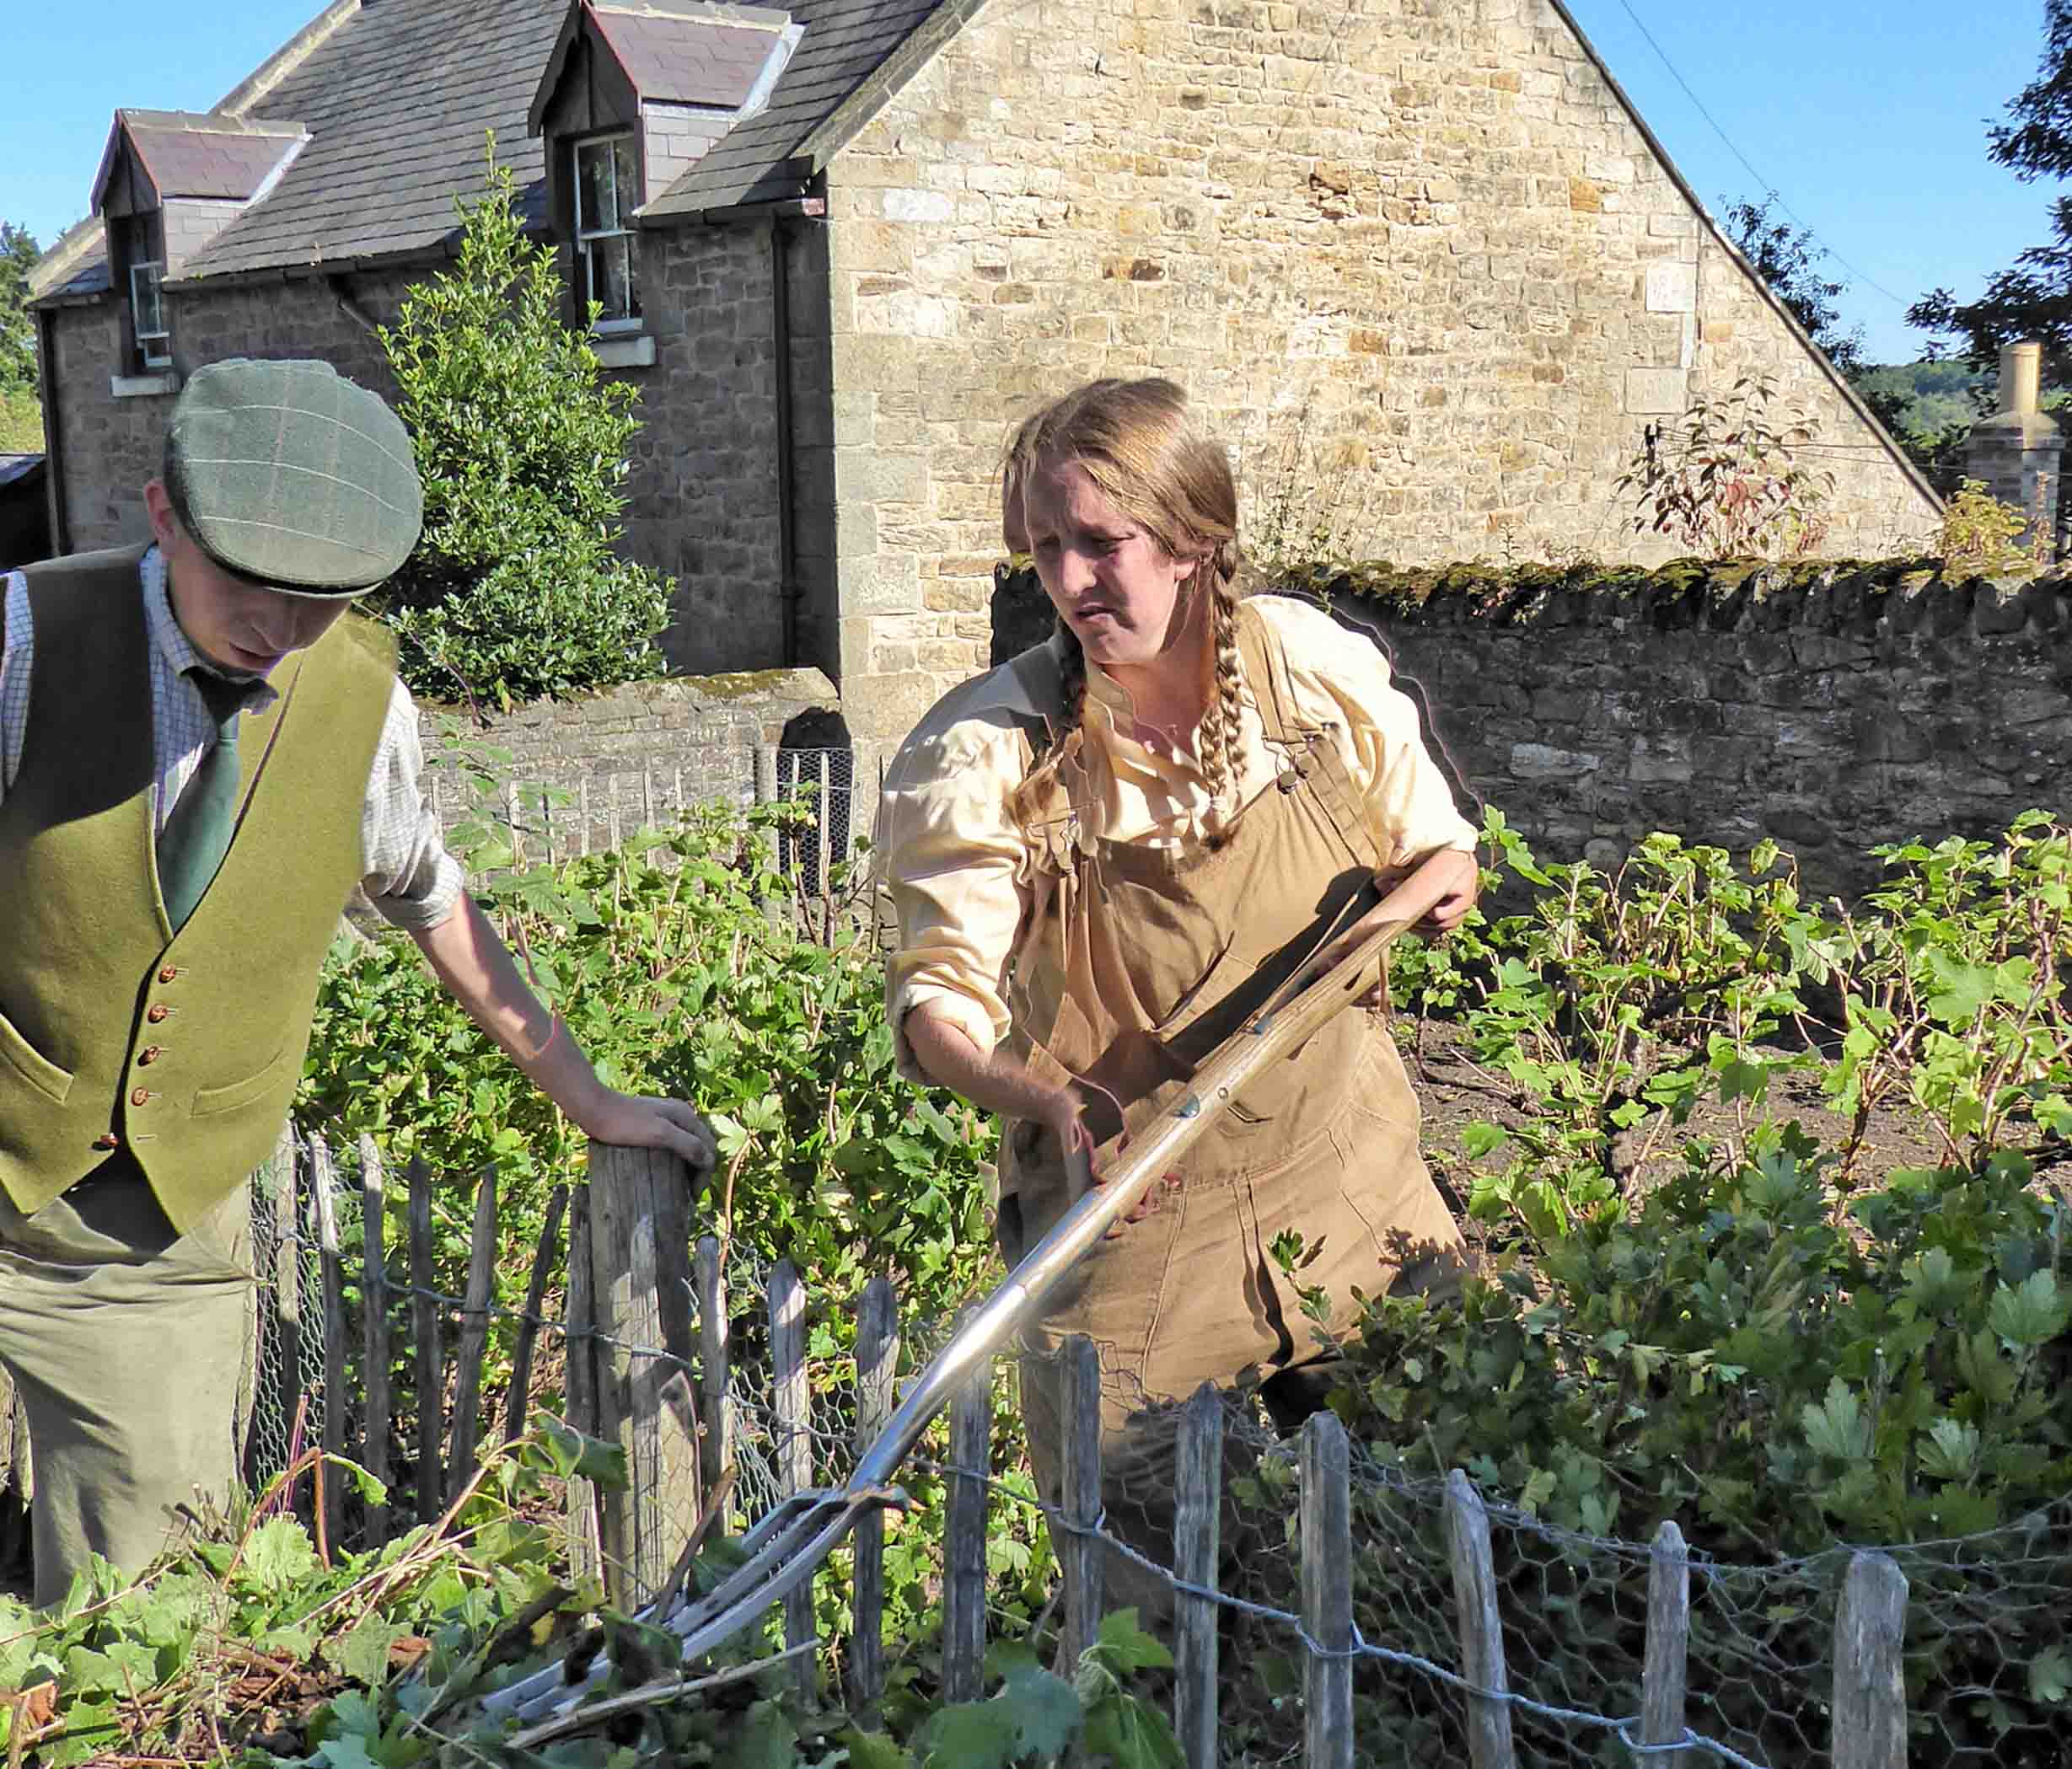 Girl in brown overalls with a garden fork